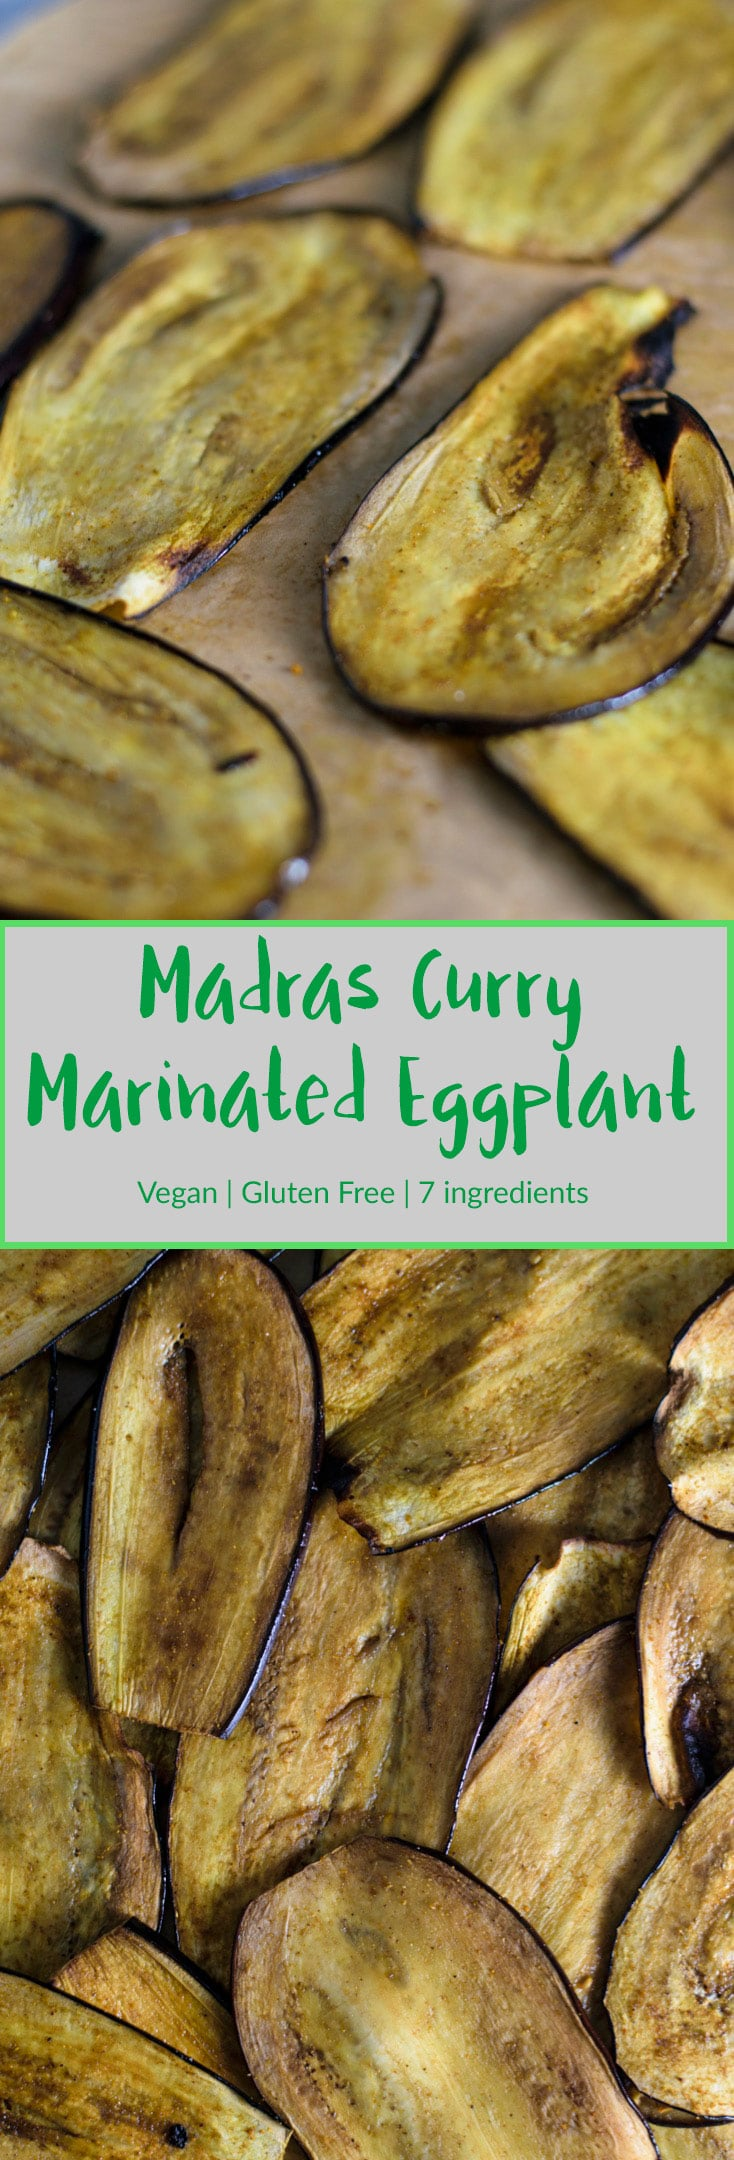 Madras Curry Marinated Eggplant | Vegan, gluten free, and only 7 ingredients. Thinly sliced eggplant is rubbed with a curry marinade and roasted for a deliciously chewy, ultra flavorful result. Perfect for eating with rice, in sandwiches, salads, and more! | thecuriouschickpea.com #vegan #curry